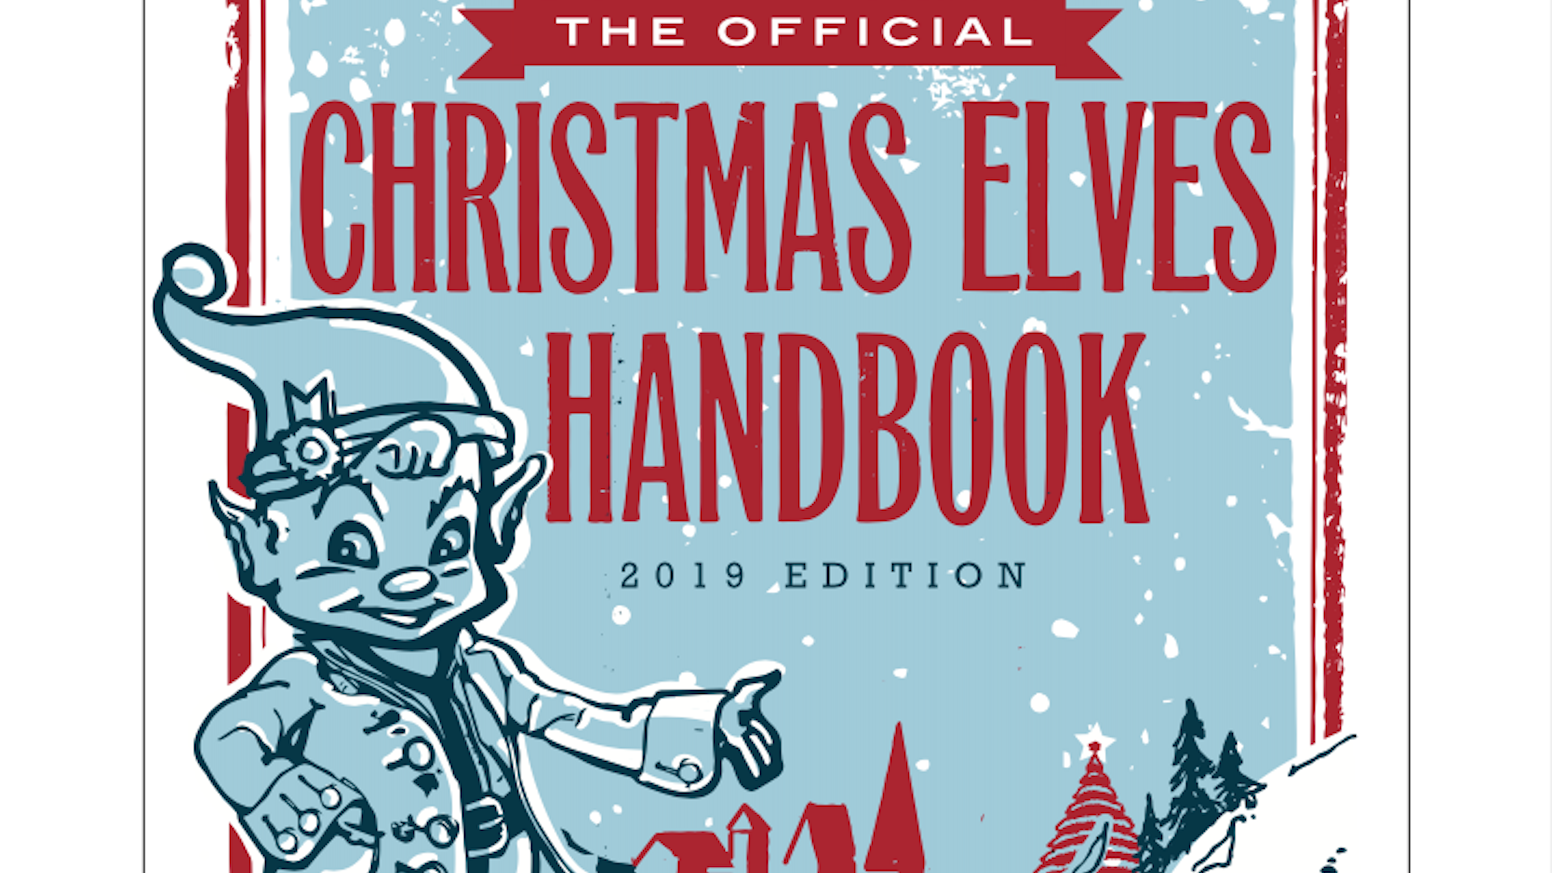 The definitive insider's guide to a Christmas Elf's entire life and all their elfin events and hollydays happening in the year 2019.